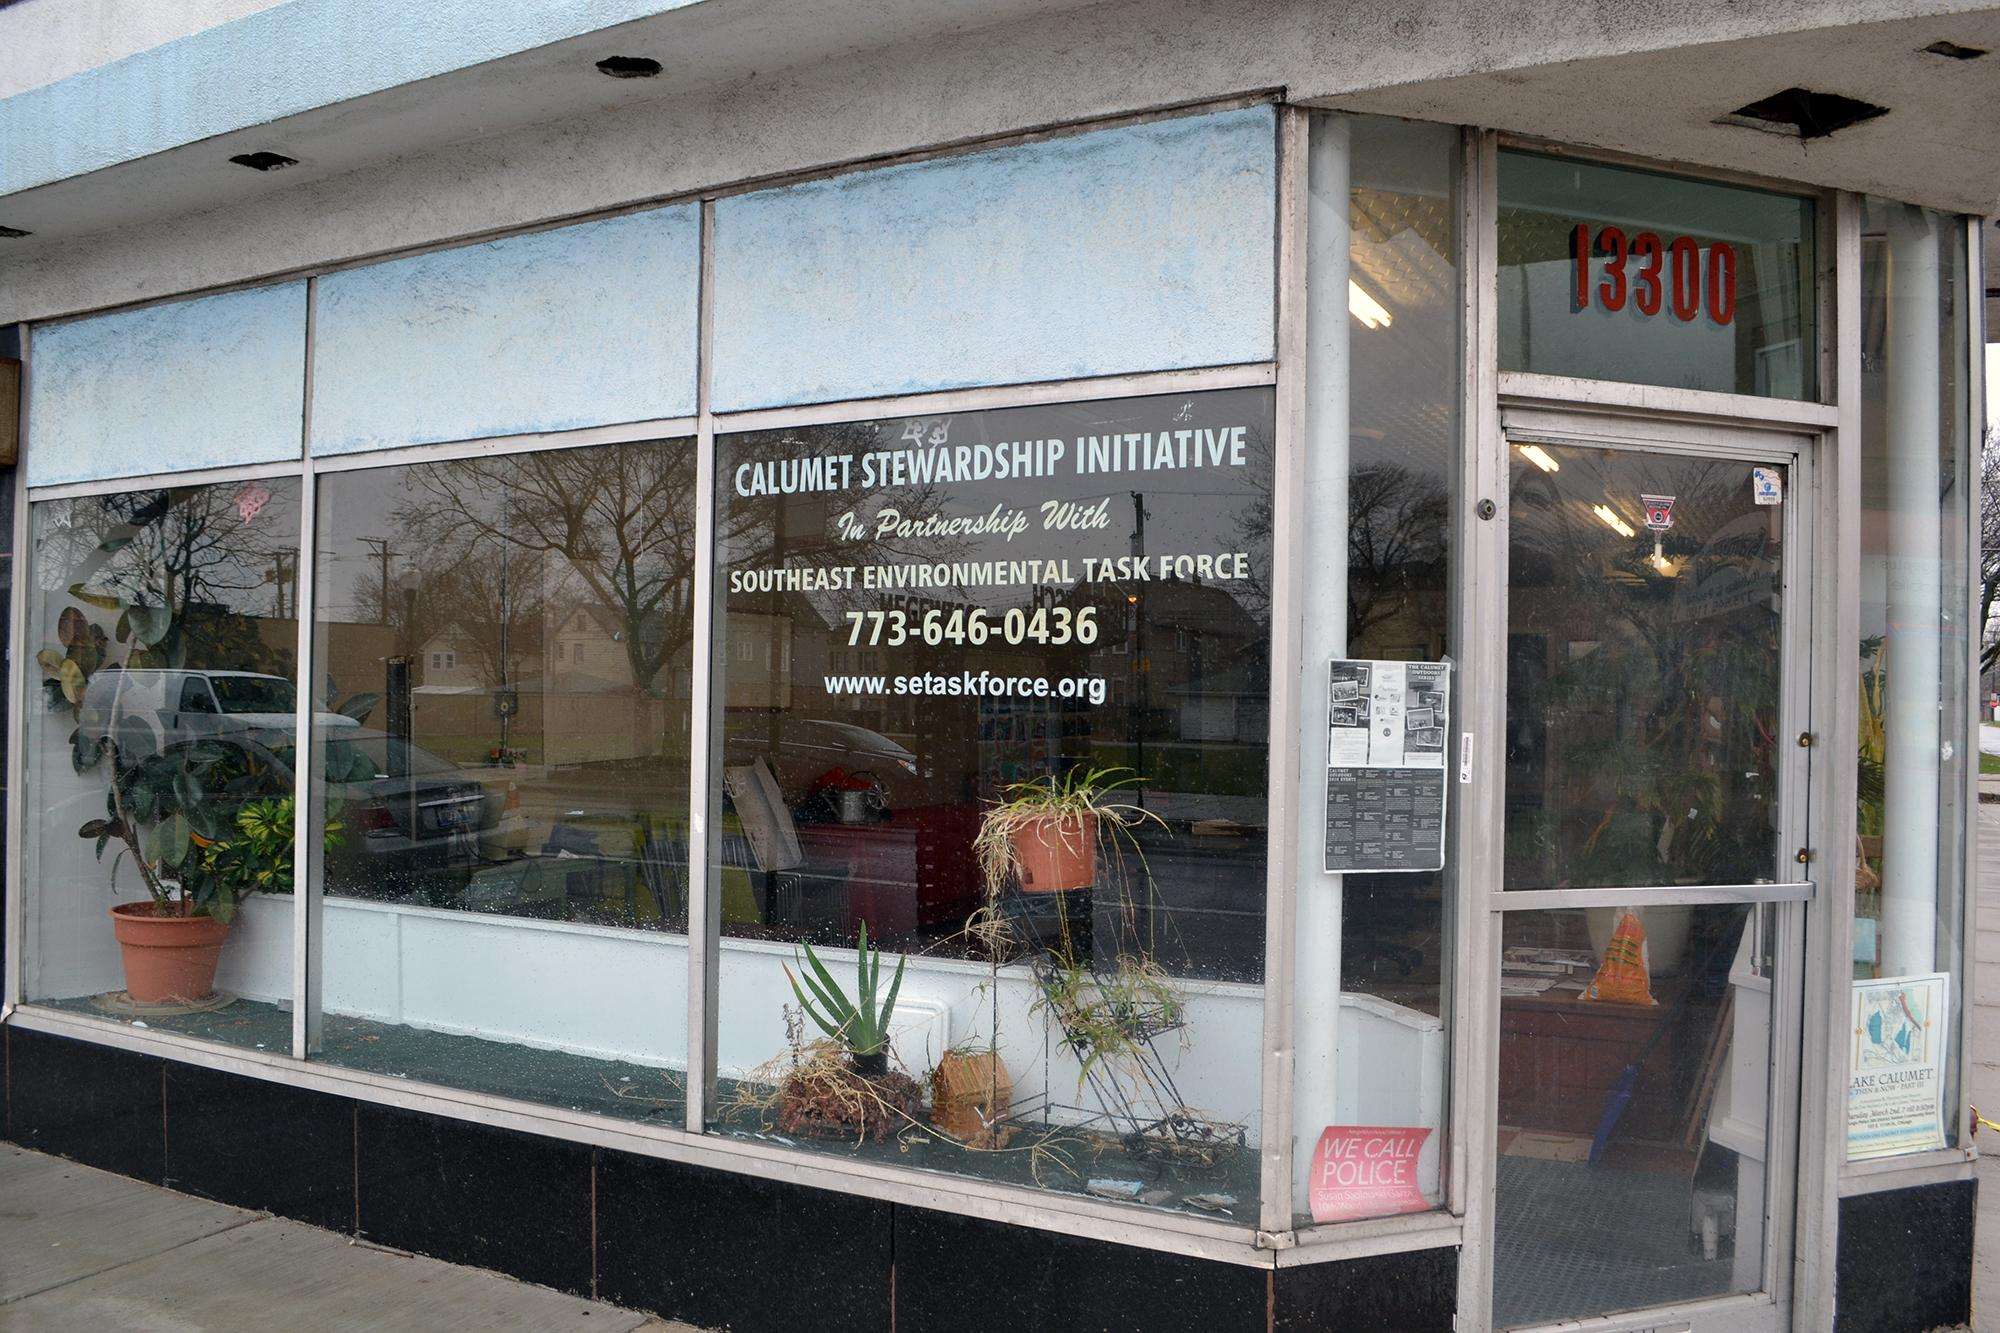 Southeast Environmental Task Force's office in Chicago's Hegewisch community area. (Alex Ruppenthal / Chicago Tonight)